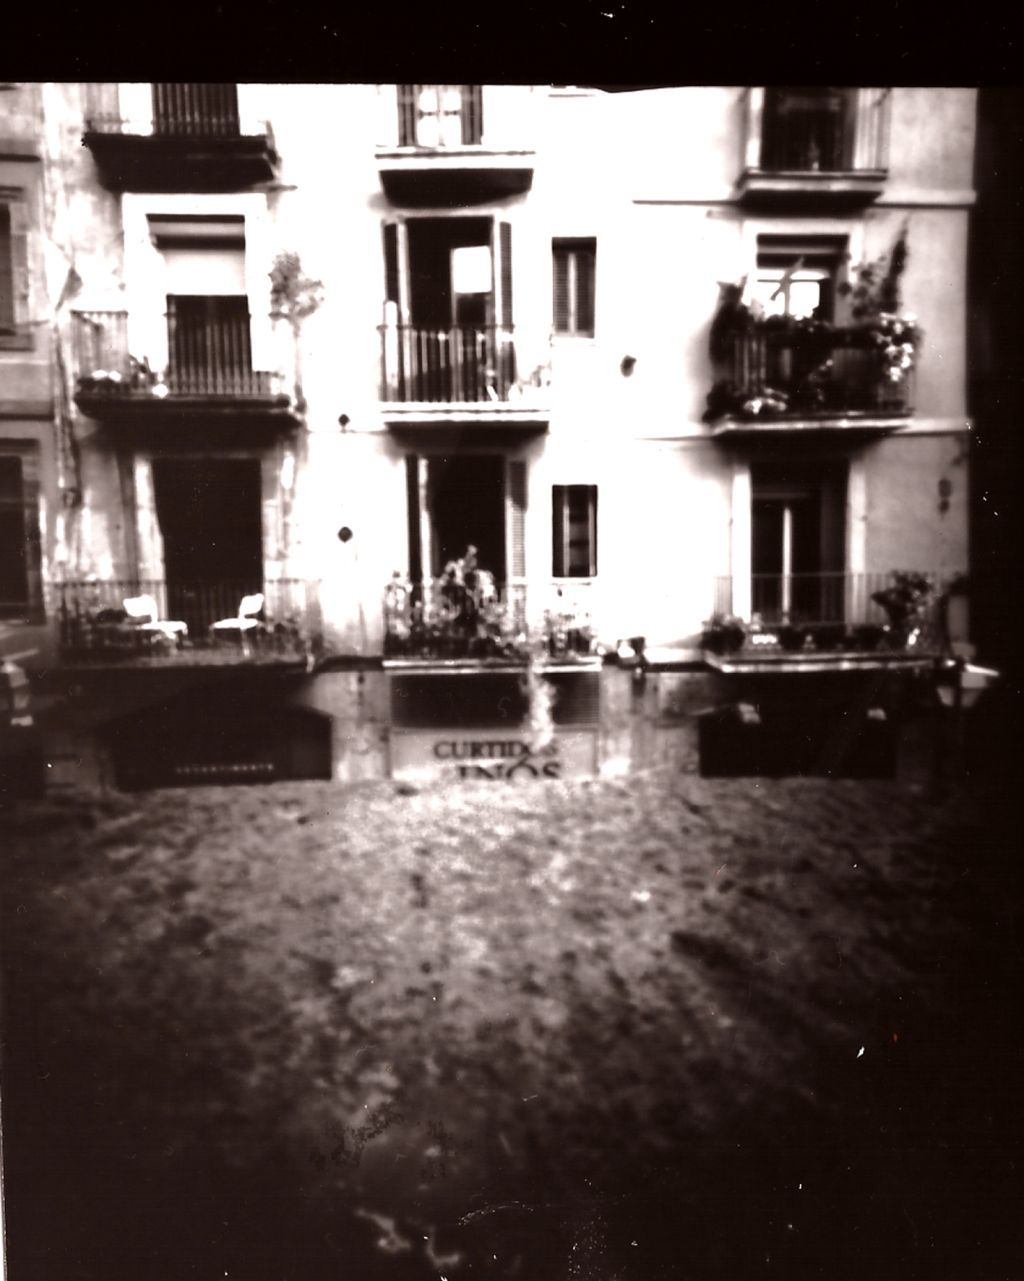 pinhole photography by zitoillustrator